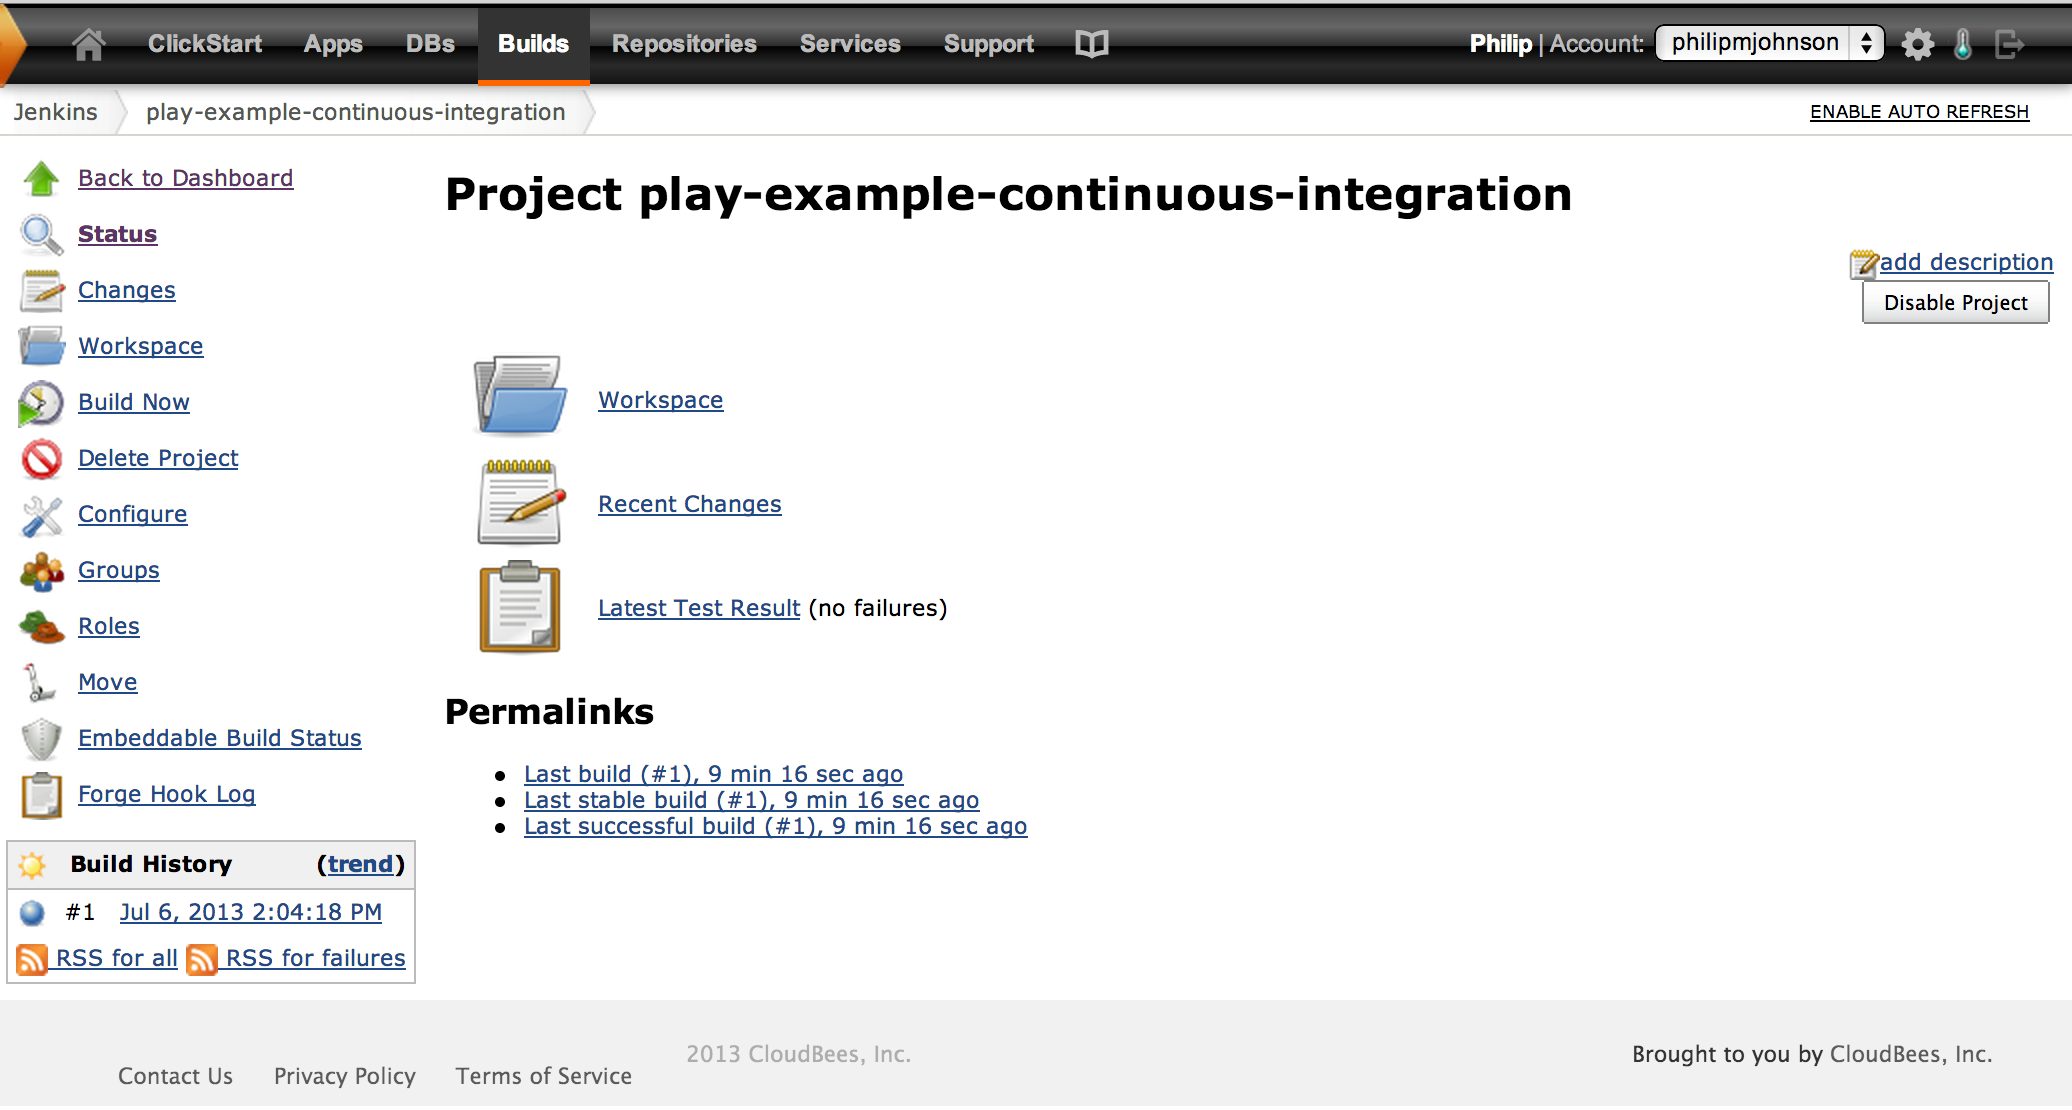 Play-example-continuous-integration